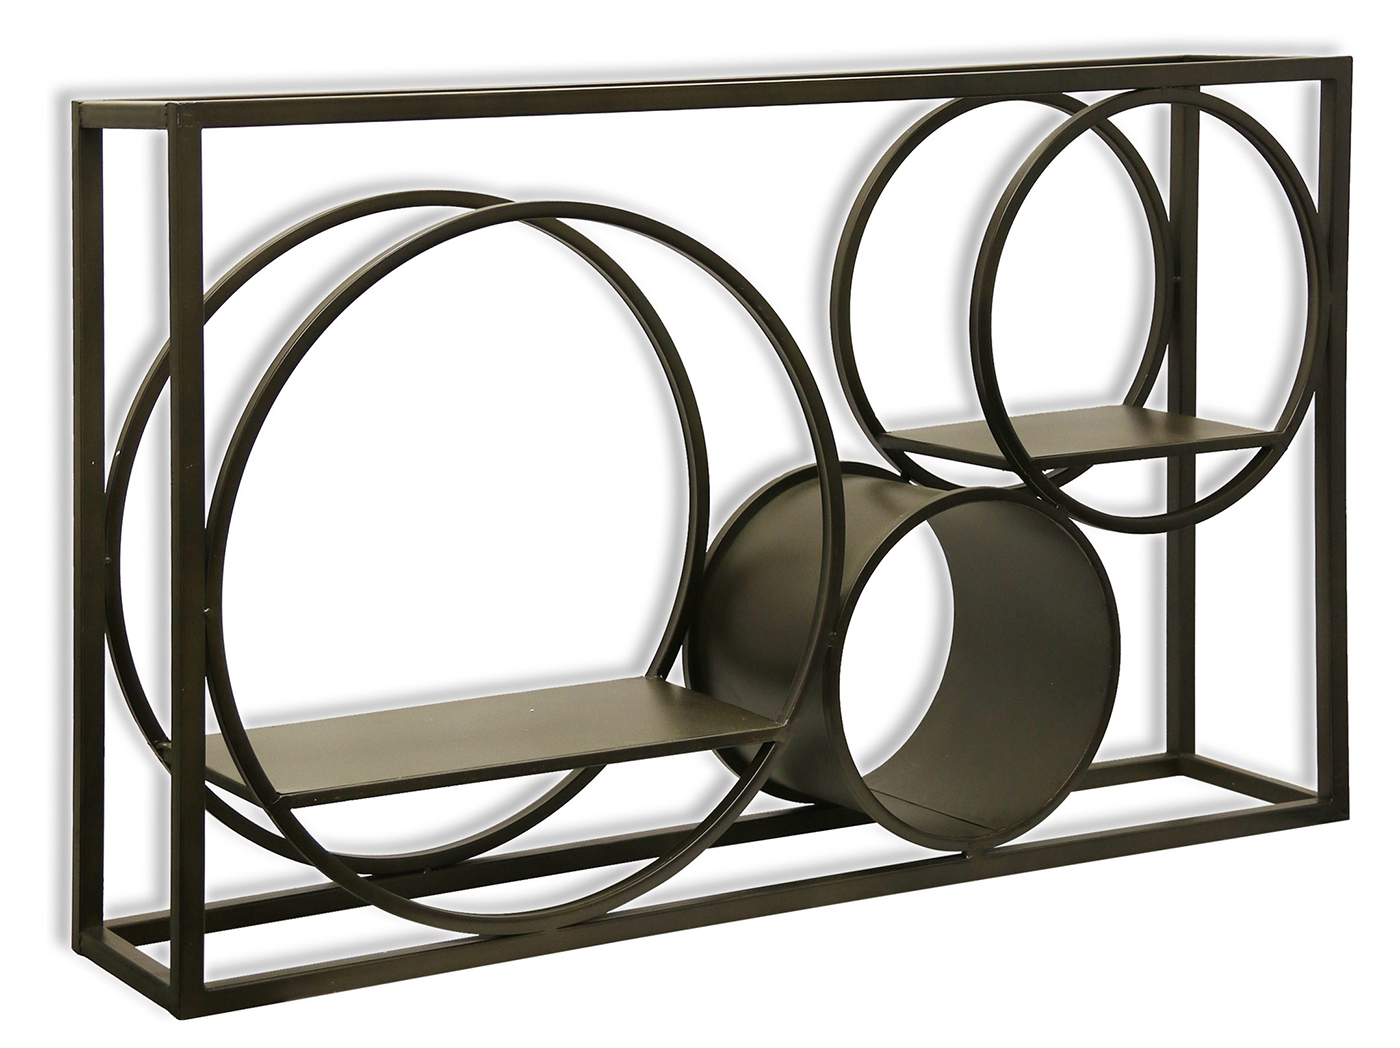 "Iron Finished Metal Geometric Wall Shelf 39.5""W x 23.5""H"